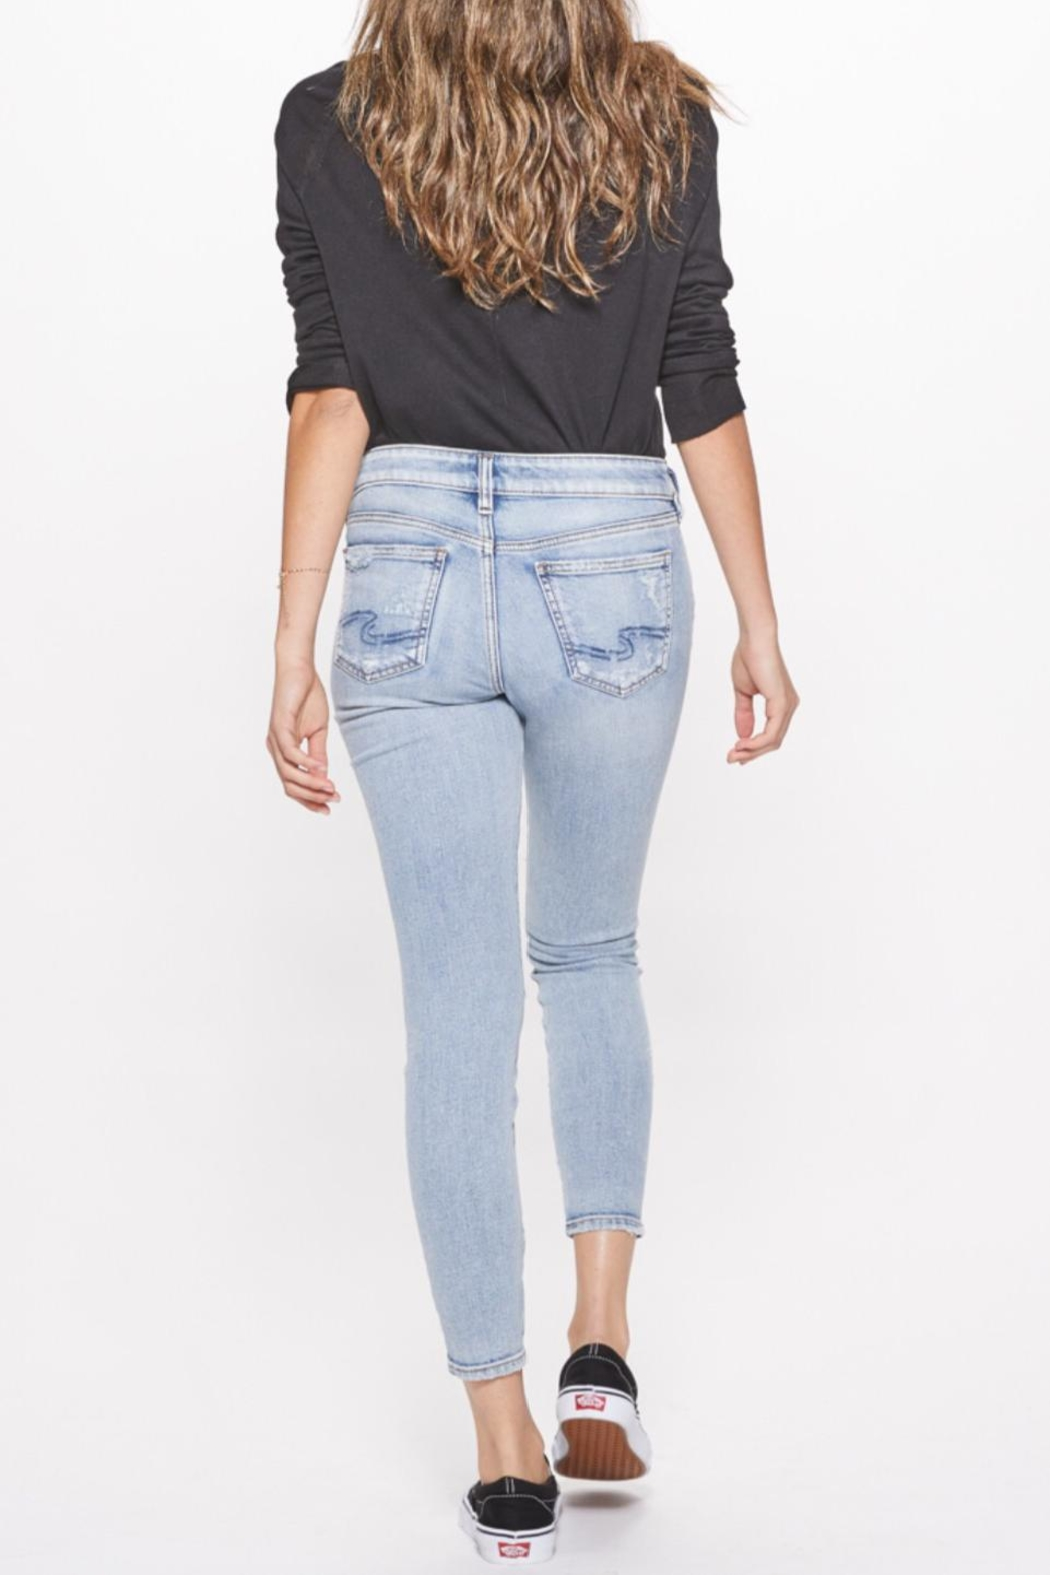 Silver Jeans Co. Distressed Skinny Jeans - Back Cropped Image